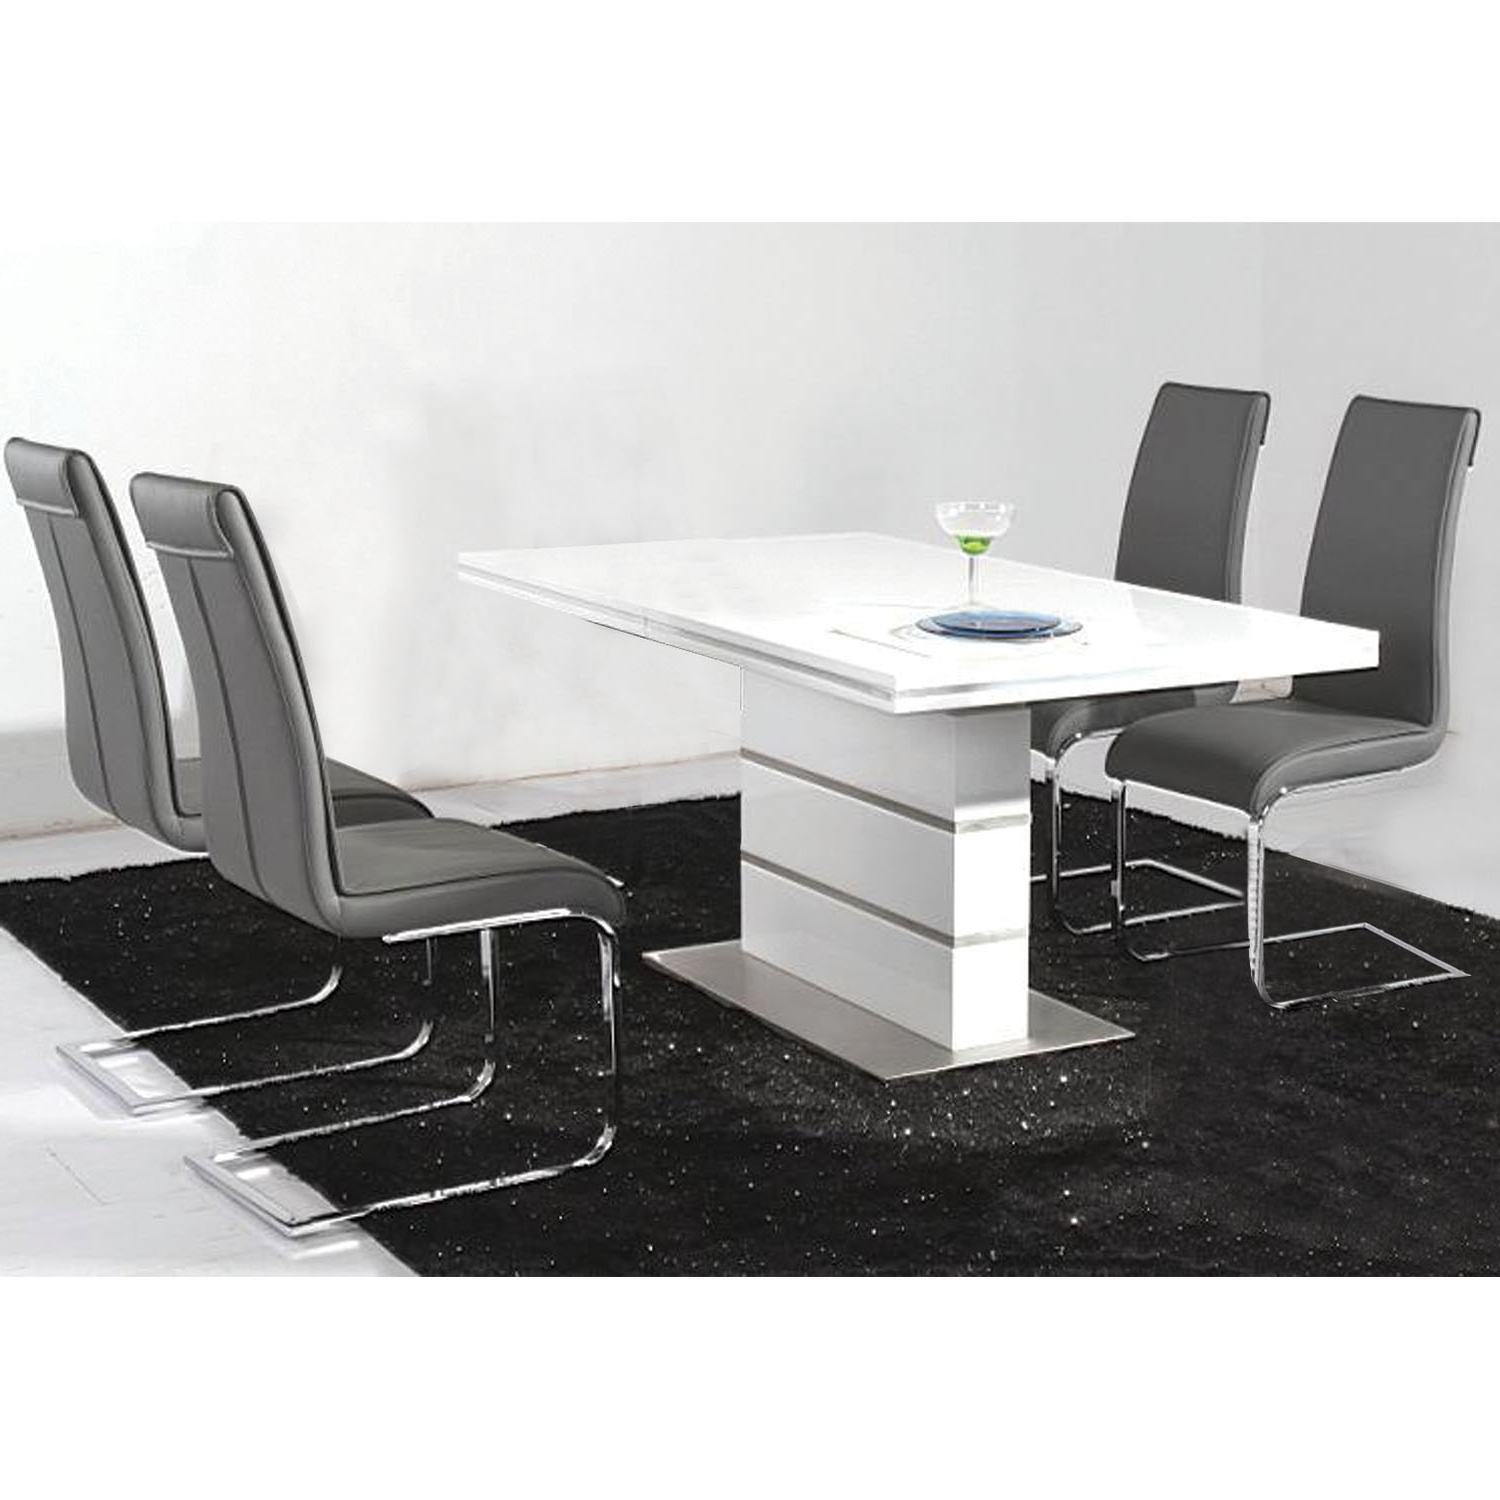 High Gloss White Dining Chairs Regarding 2018 Awesome Dining Set With White High Gloss Dining Table With Metal (View 17 of 25)